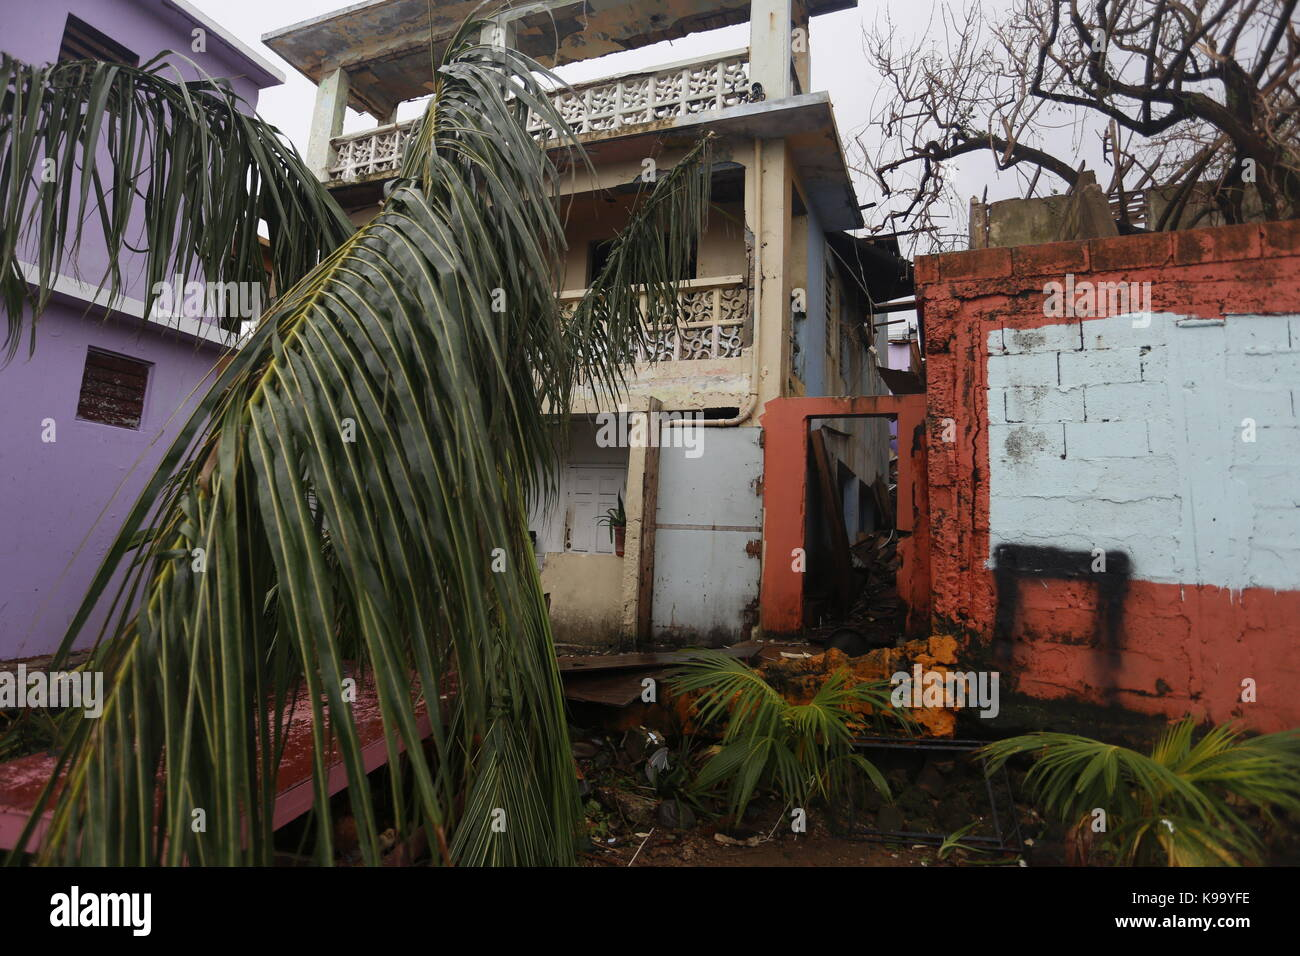 San Juan, Puerto Rico. 22nd Sep, 2017. View of the damages caused by Hurricane Maria, at La Perla neighbourhood, - Stock Image